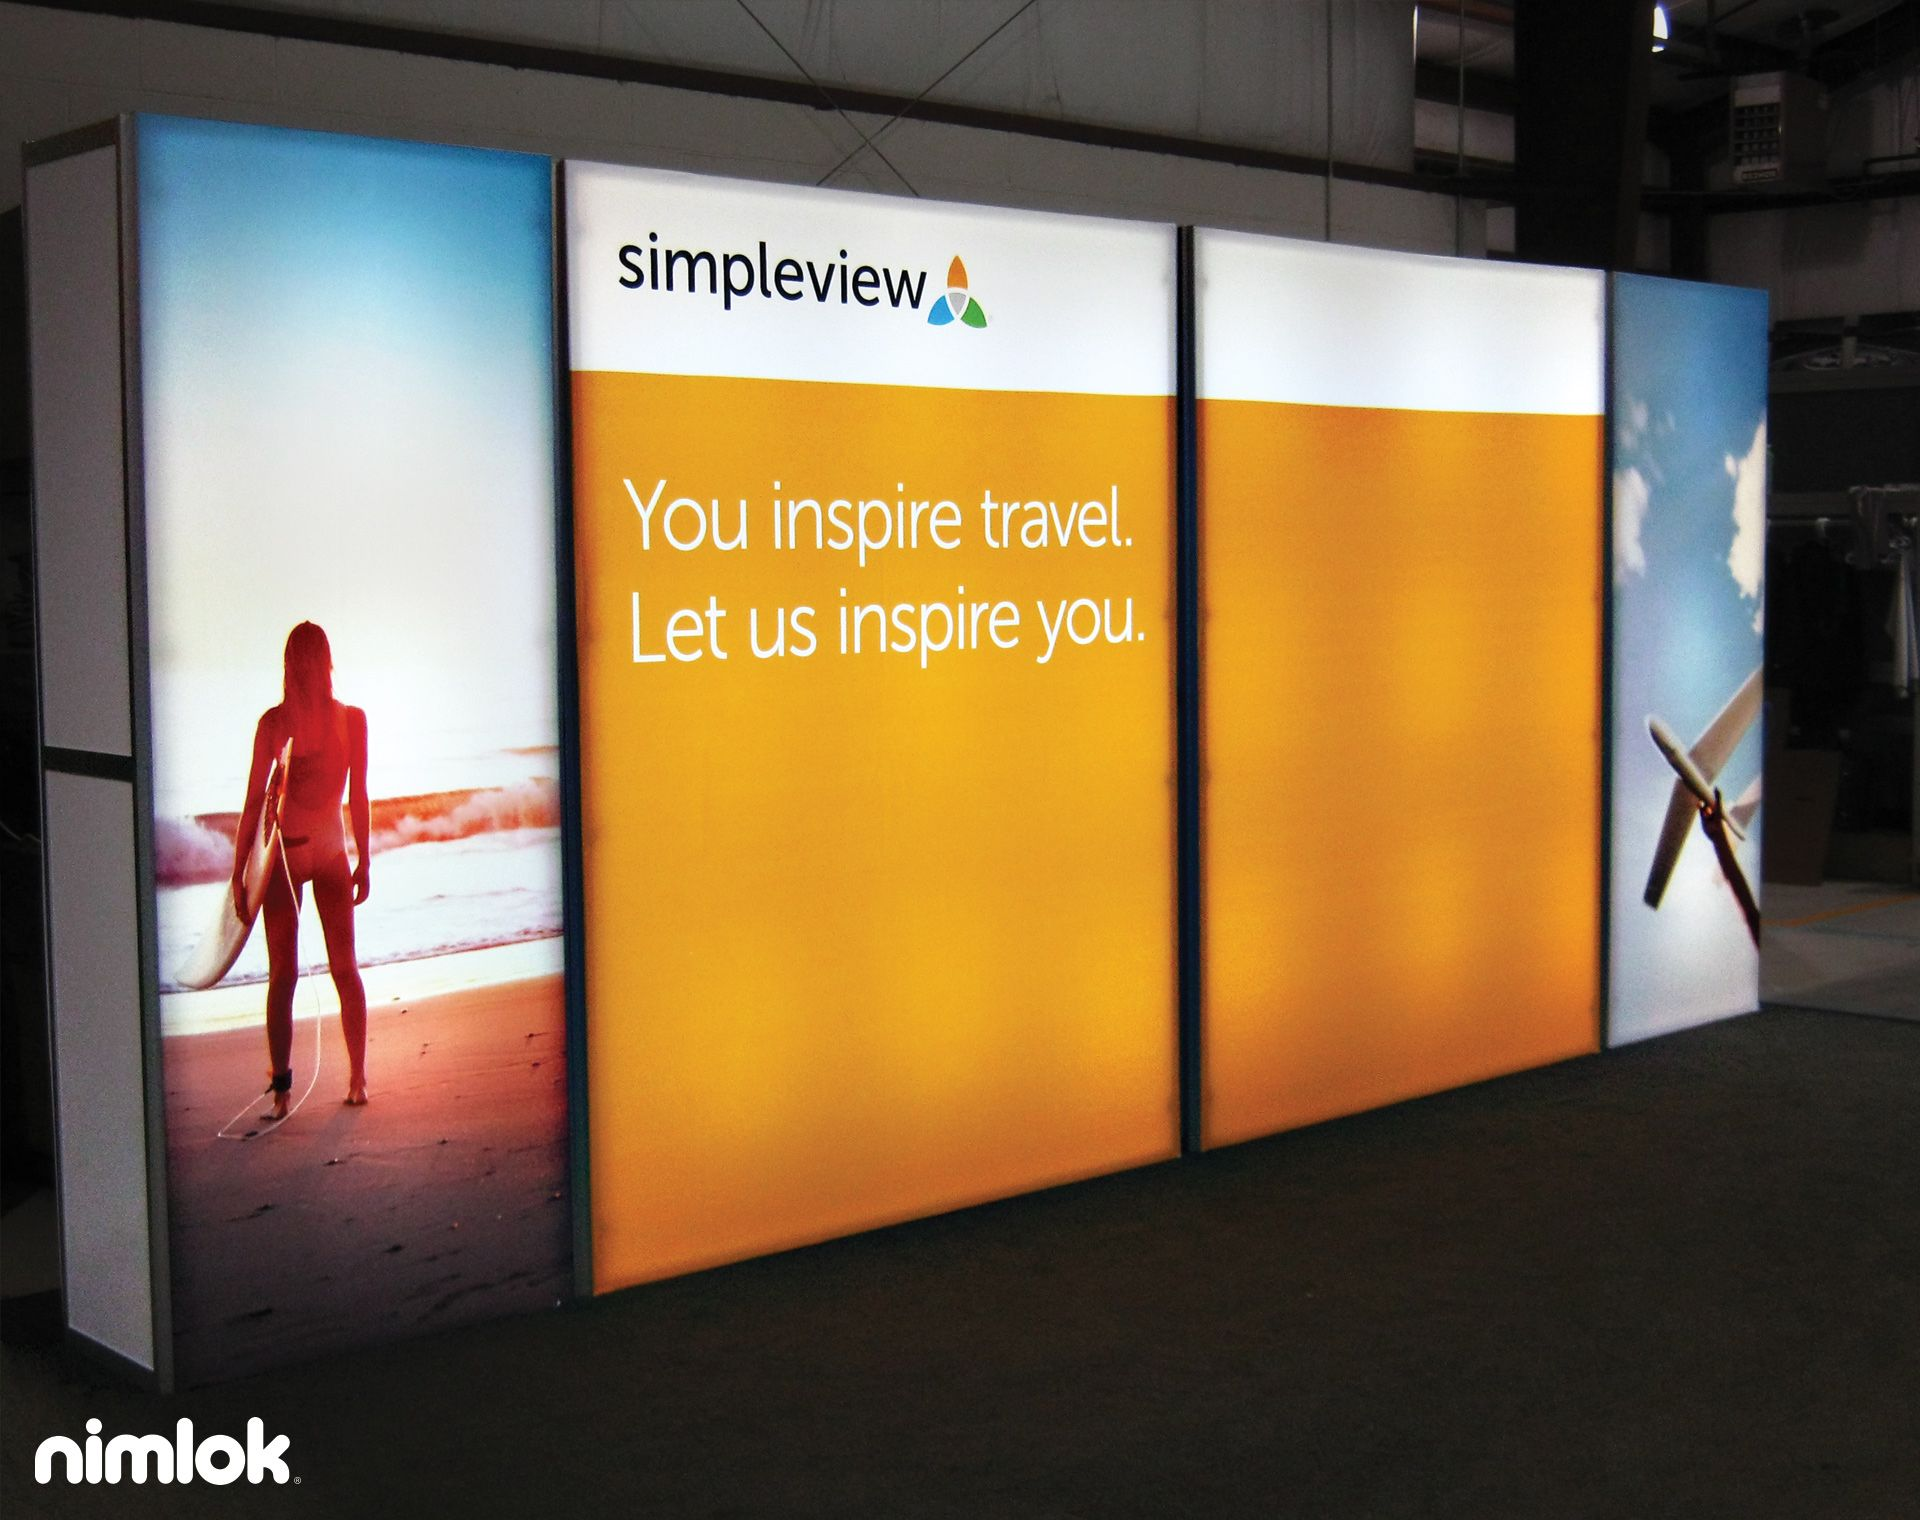 Exhibition Booth Banner : Simpleview trade show exhibit this smartwall banner